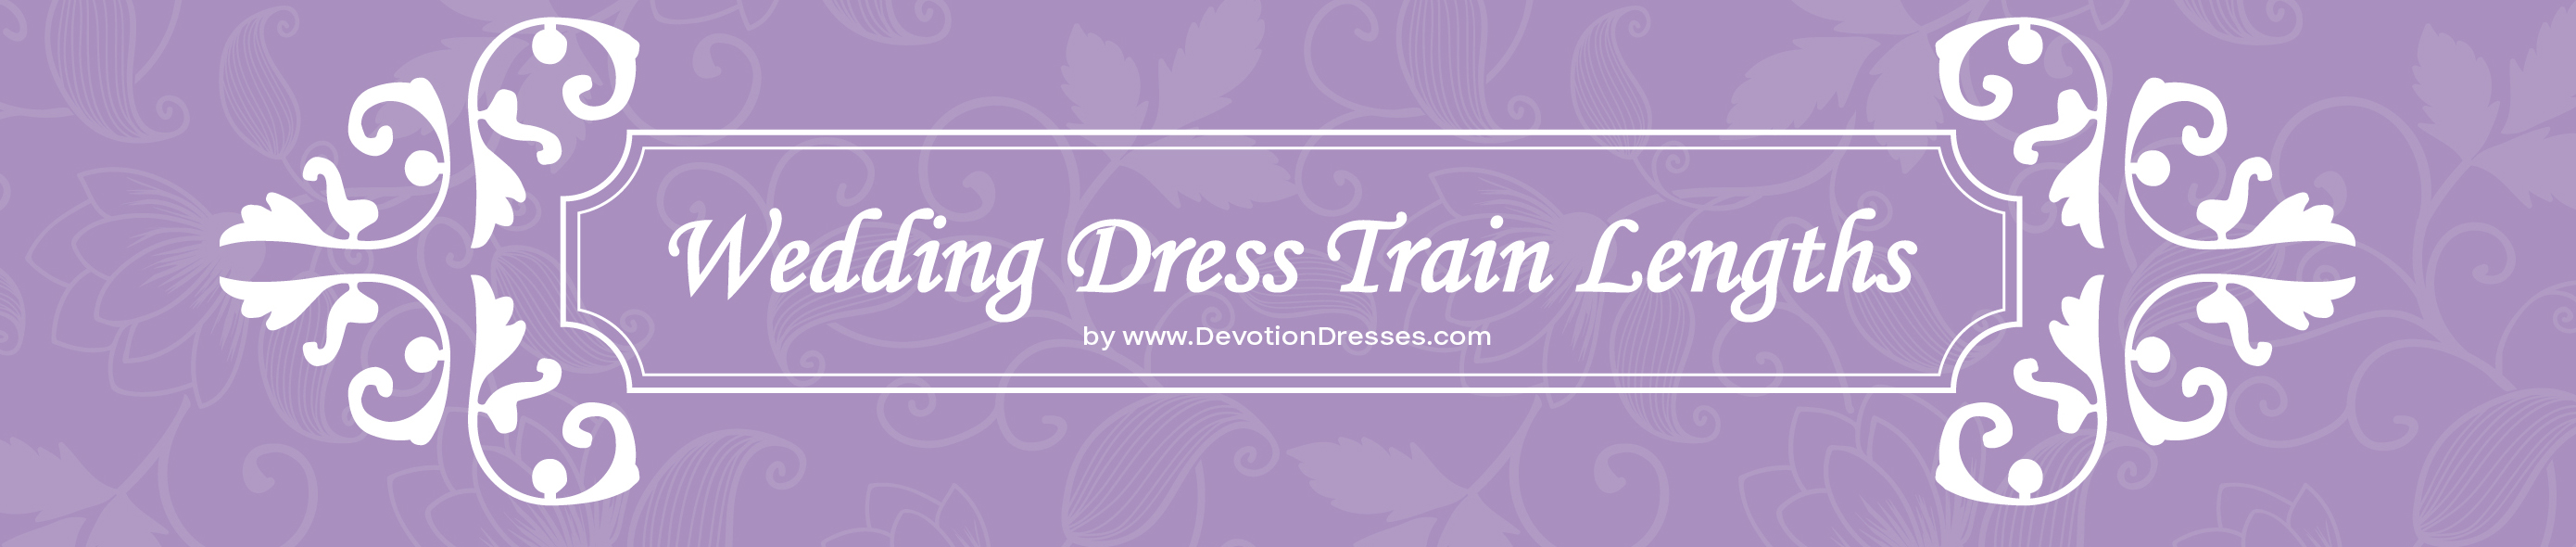 Wedding Dress Train Length Guide